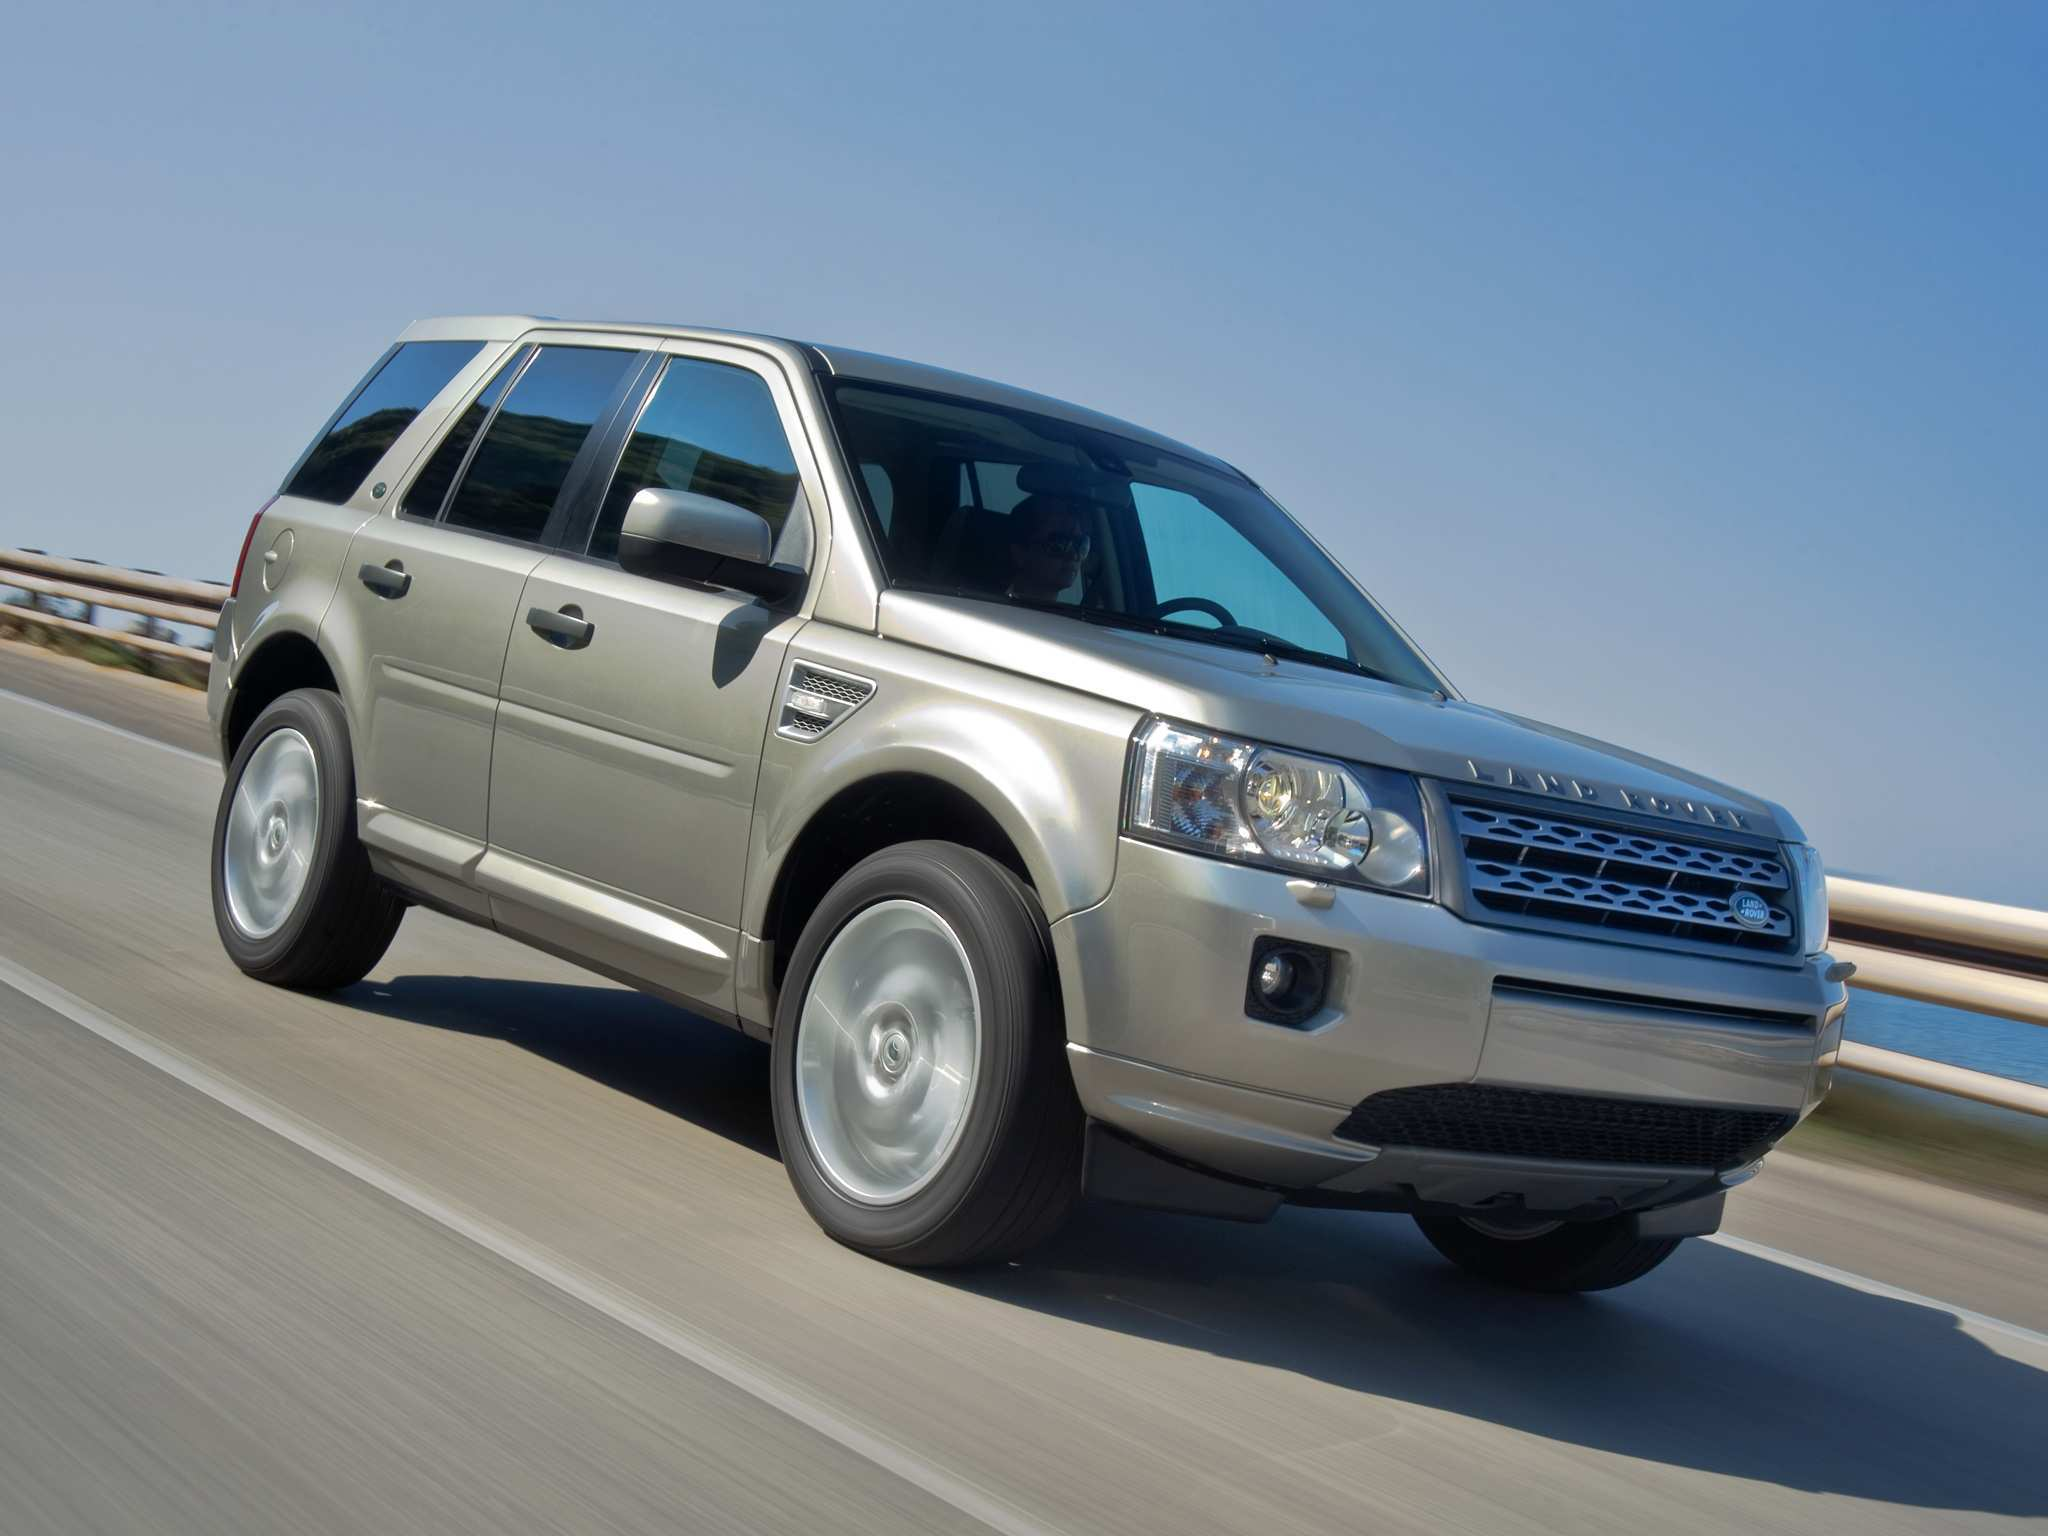 60 The 2019 Land Rover Freelander 2 Research New with 2019 Land Rover Freelander 2